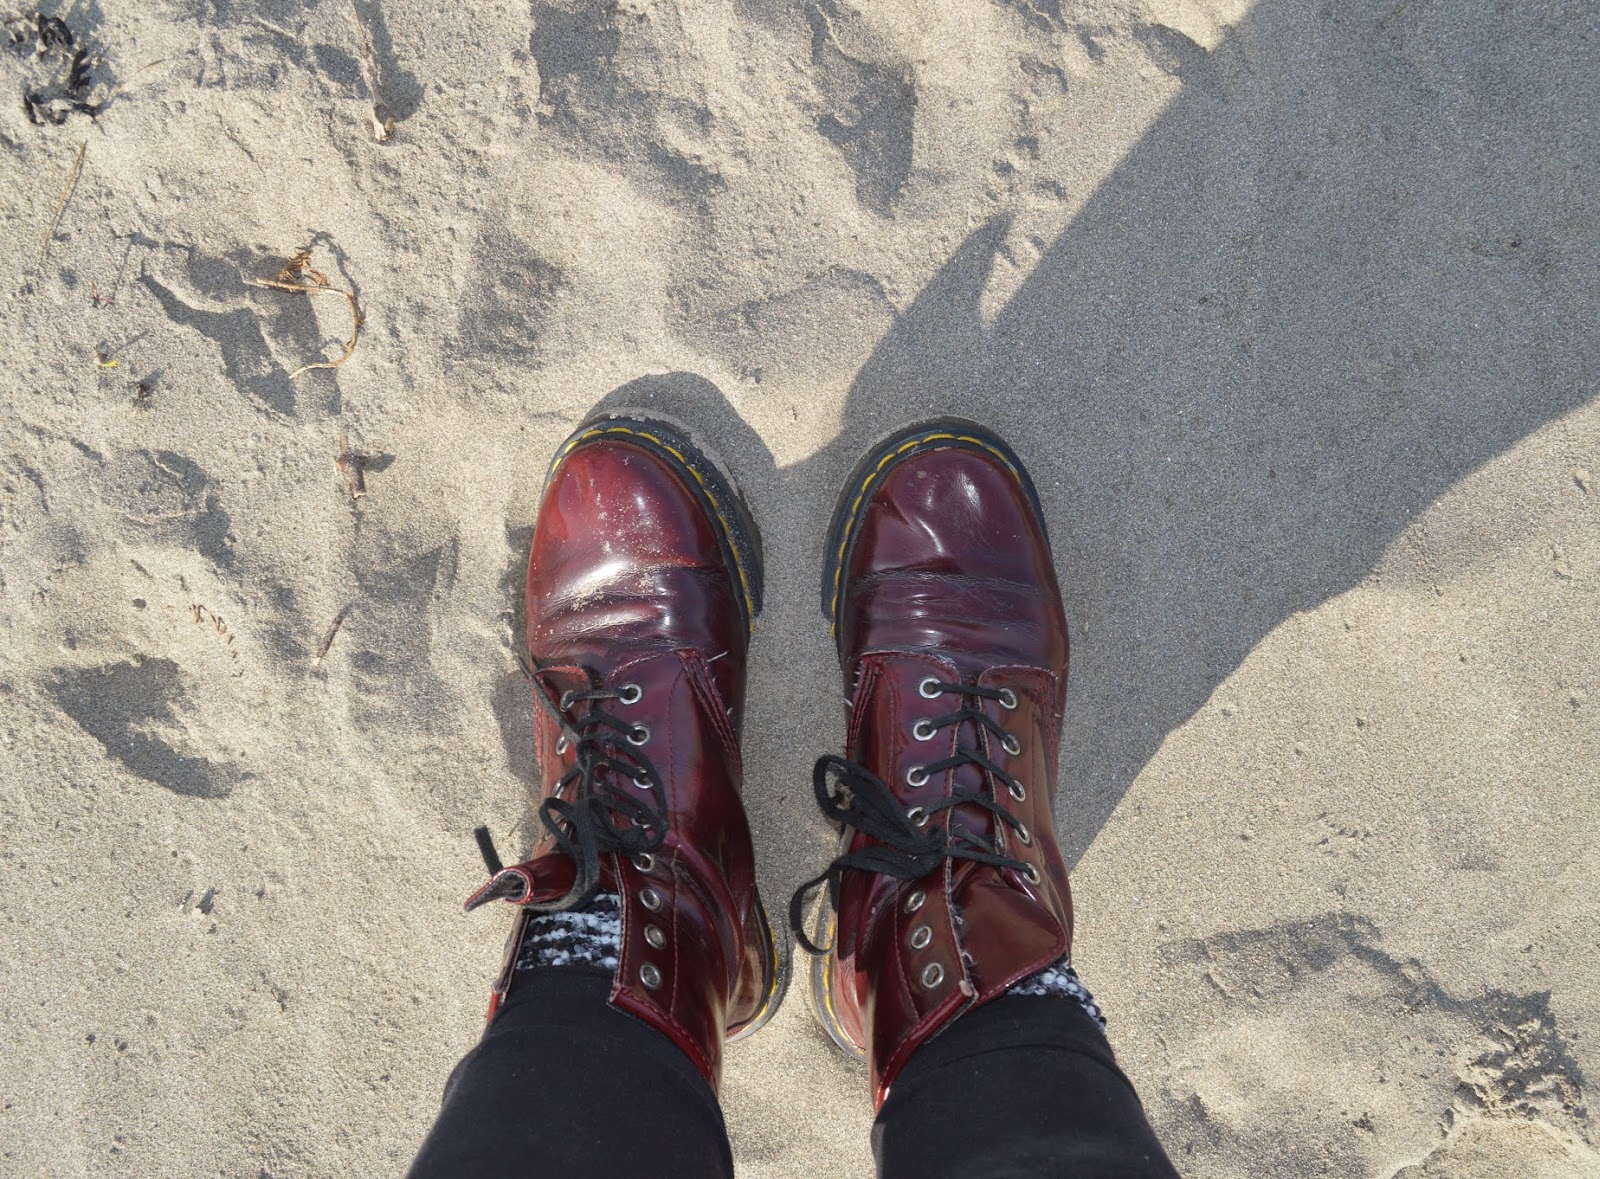 Newport Sands, Pembrokeshire, Wales, UK, Travel, Traeth Mawr, family fun, doc martens, sand